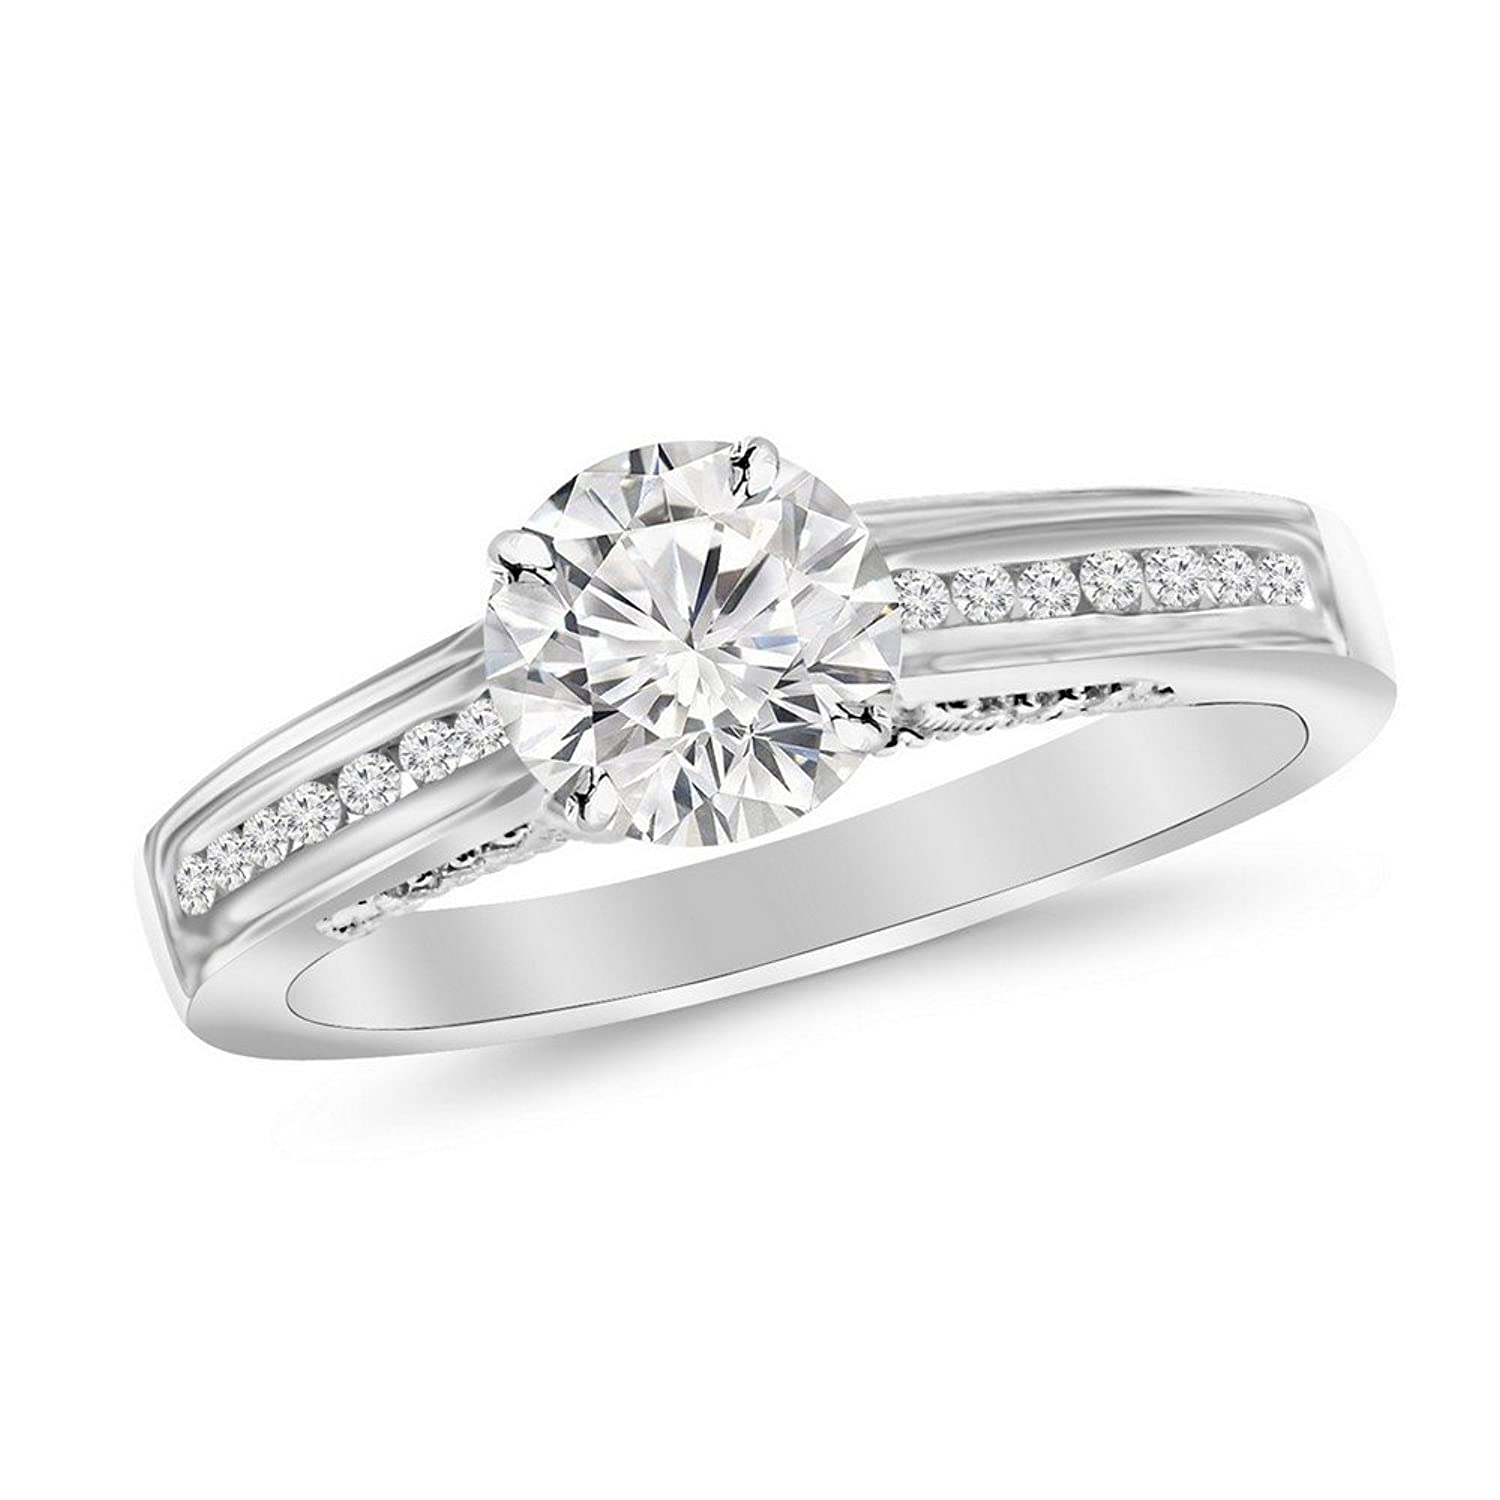 0.5 Cttw 14K White Gold Round Cut Channel Set Round Diamond Engagement Ring with a 0.3 Carat D-E Color SI1-SI2 Clarity Center